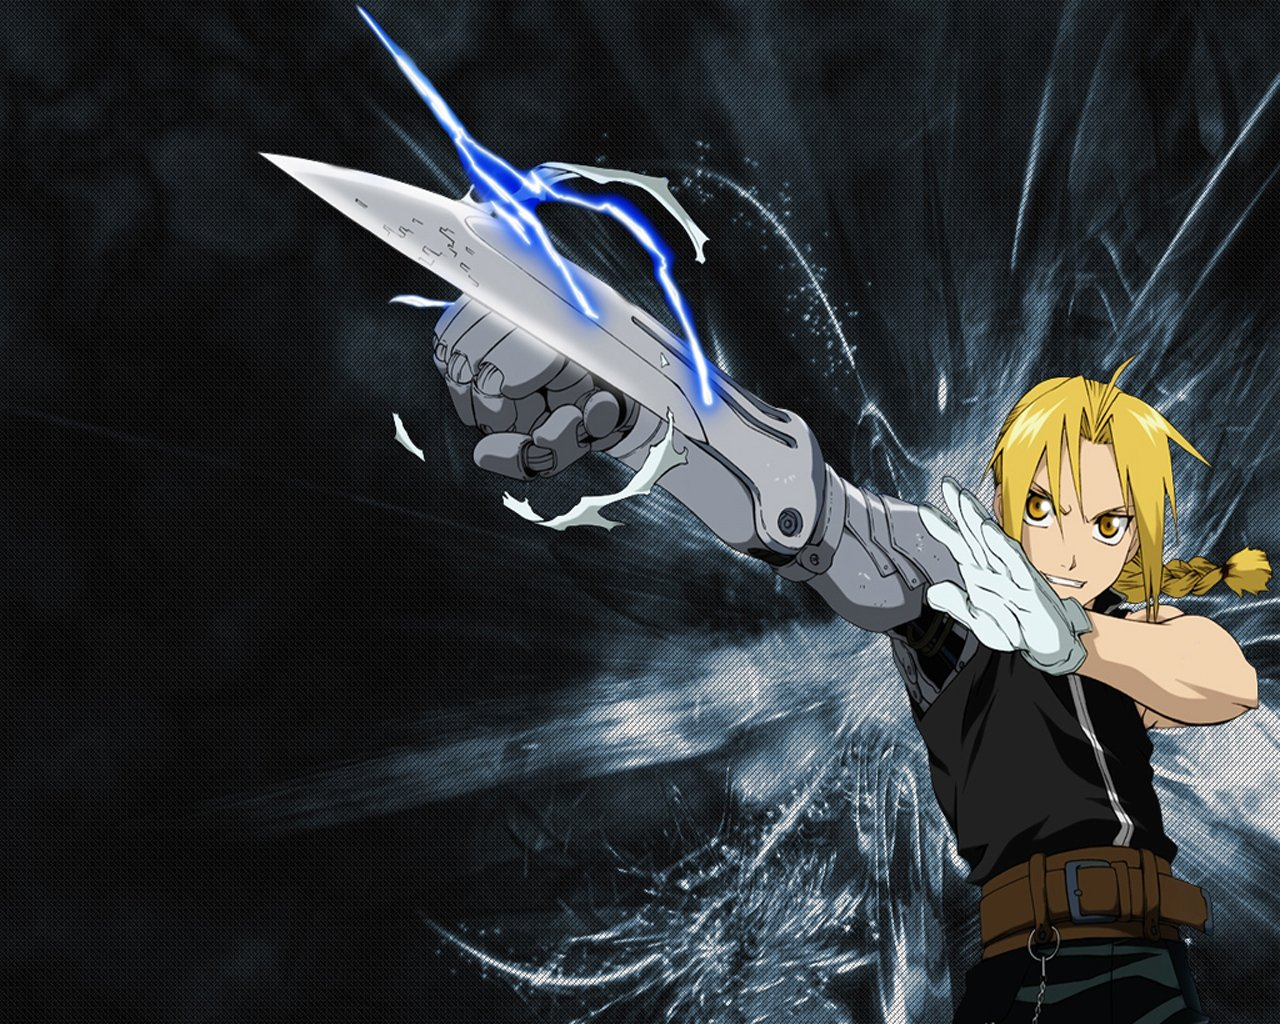 Edward Elric FMA Full Metal Alchemist Wallpaper1280 899351jpeg 1280x1024